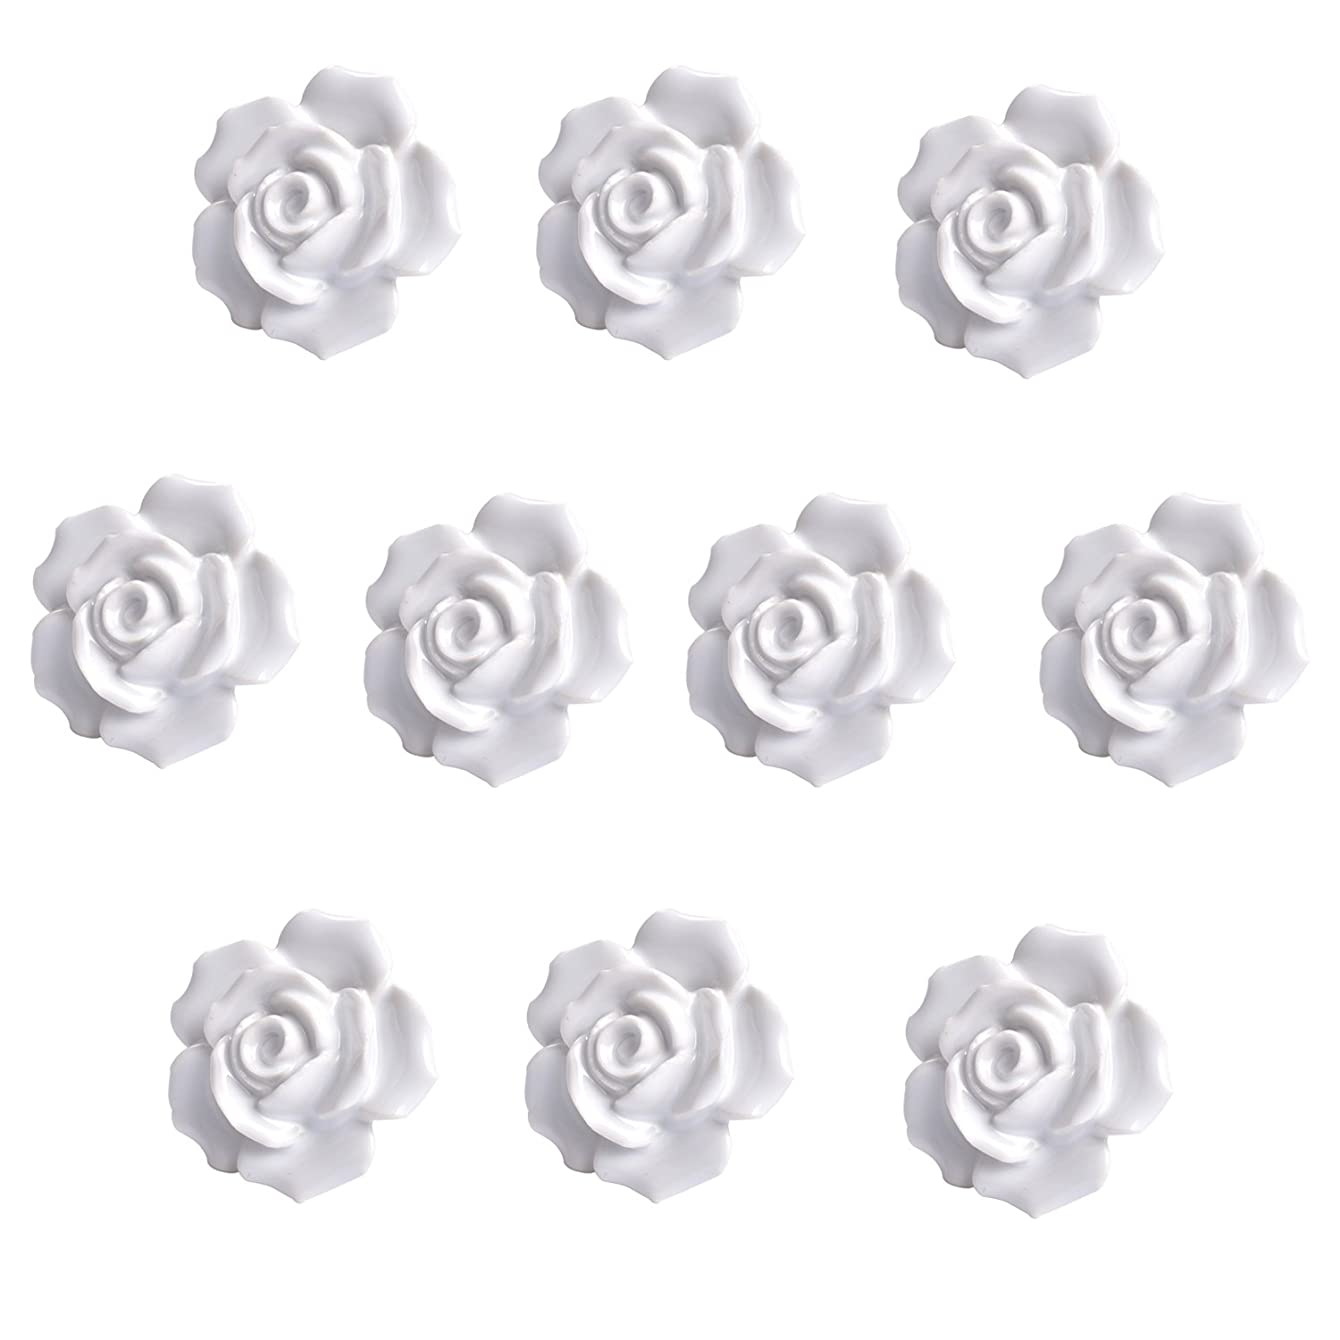 Agile-Shop 10 Pcs Ceramic Vintage Floral Rose Flower Door Knobs Handle Drawer Kitchen + Screws (White)